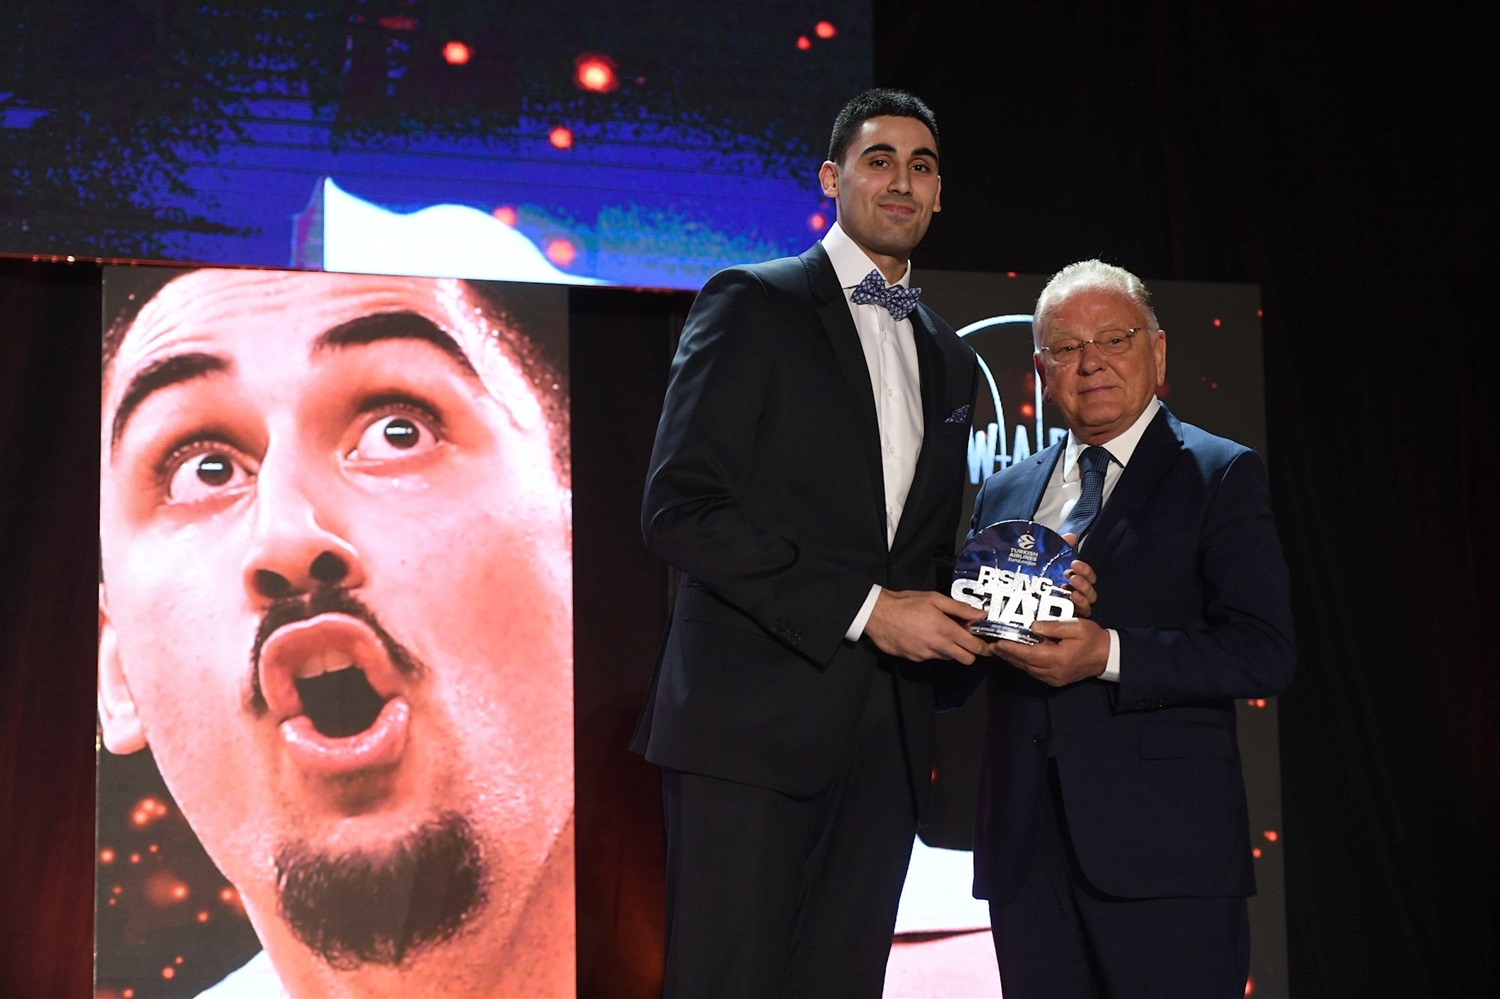 Goga Bitadze, Rising Star - 2018-19 Awards Ceremony - Final Four Vitoria-Gasteiz 2019 - EB18